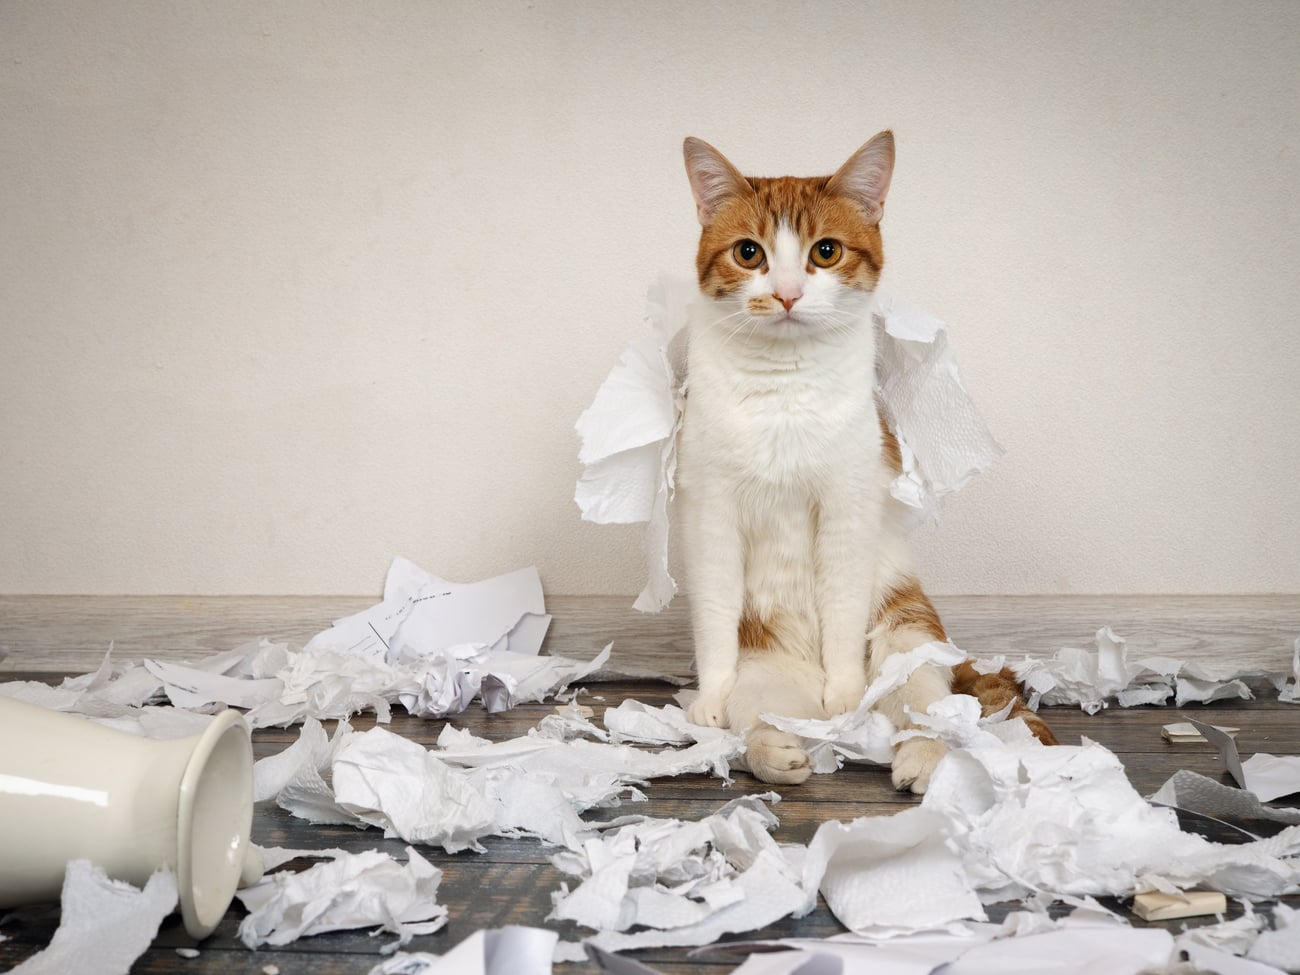 Cat made a mess with paper